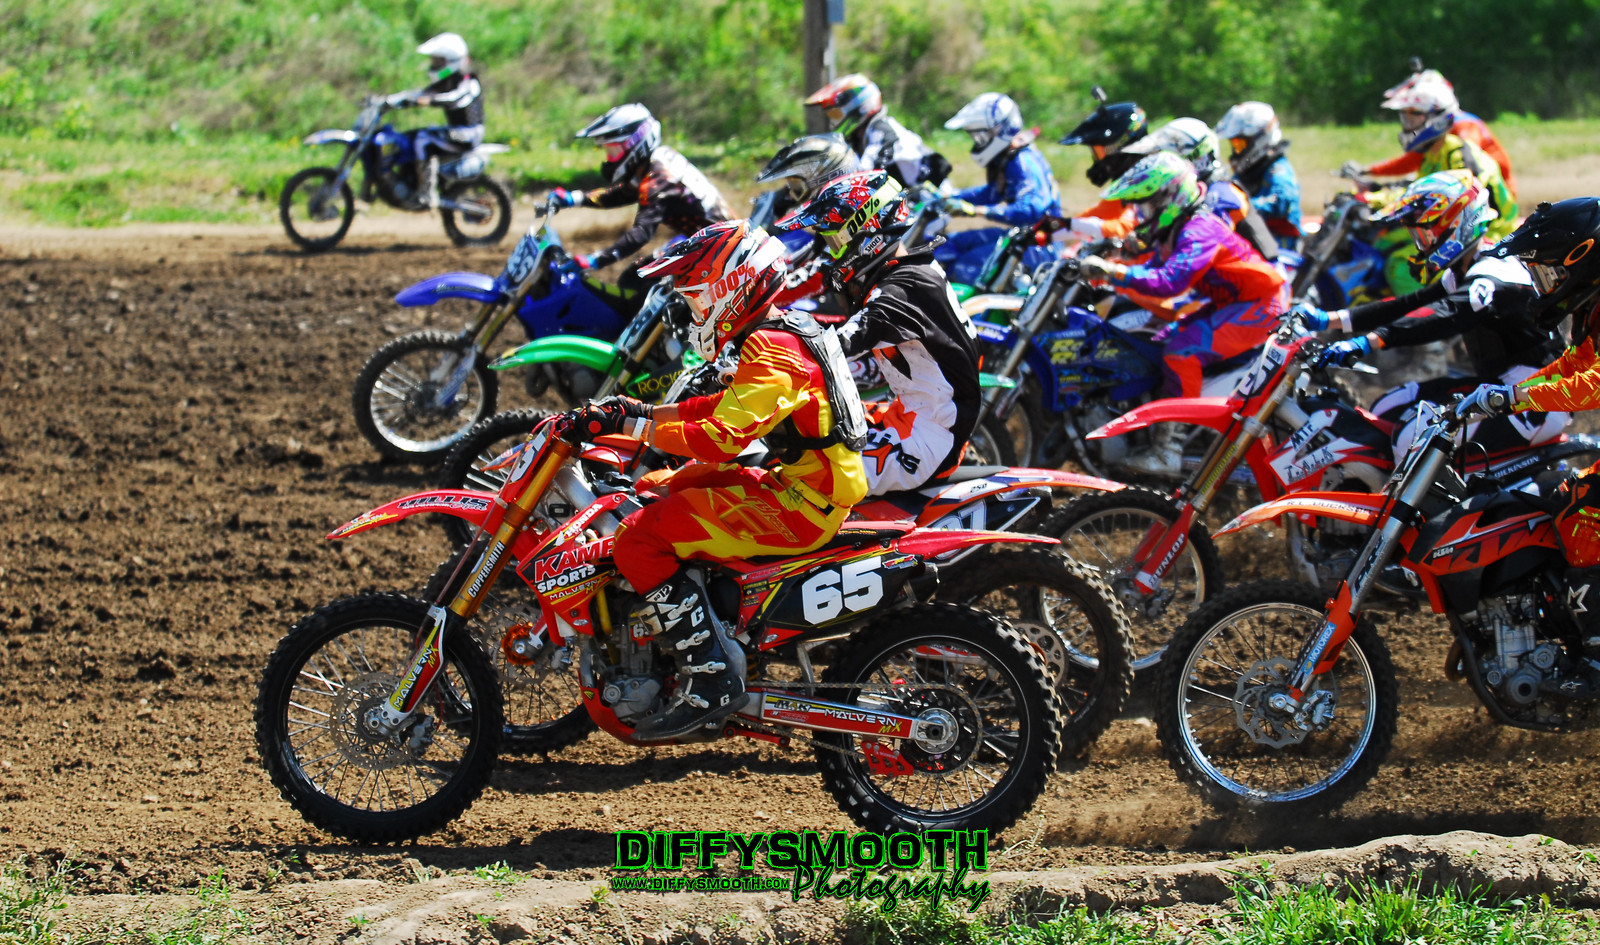 . - DiffySmooth - Motocross Pictures - Vital MX